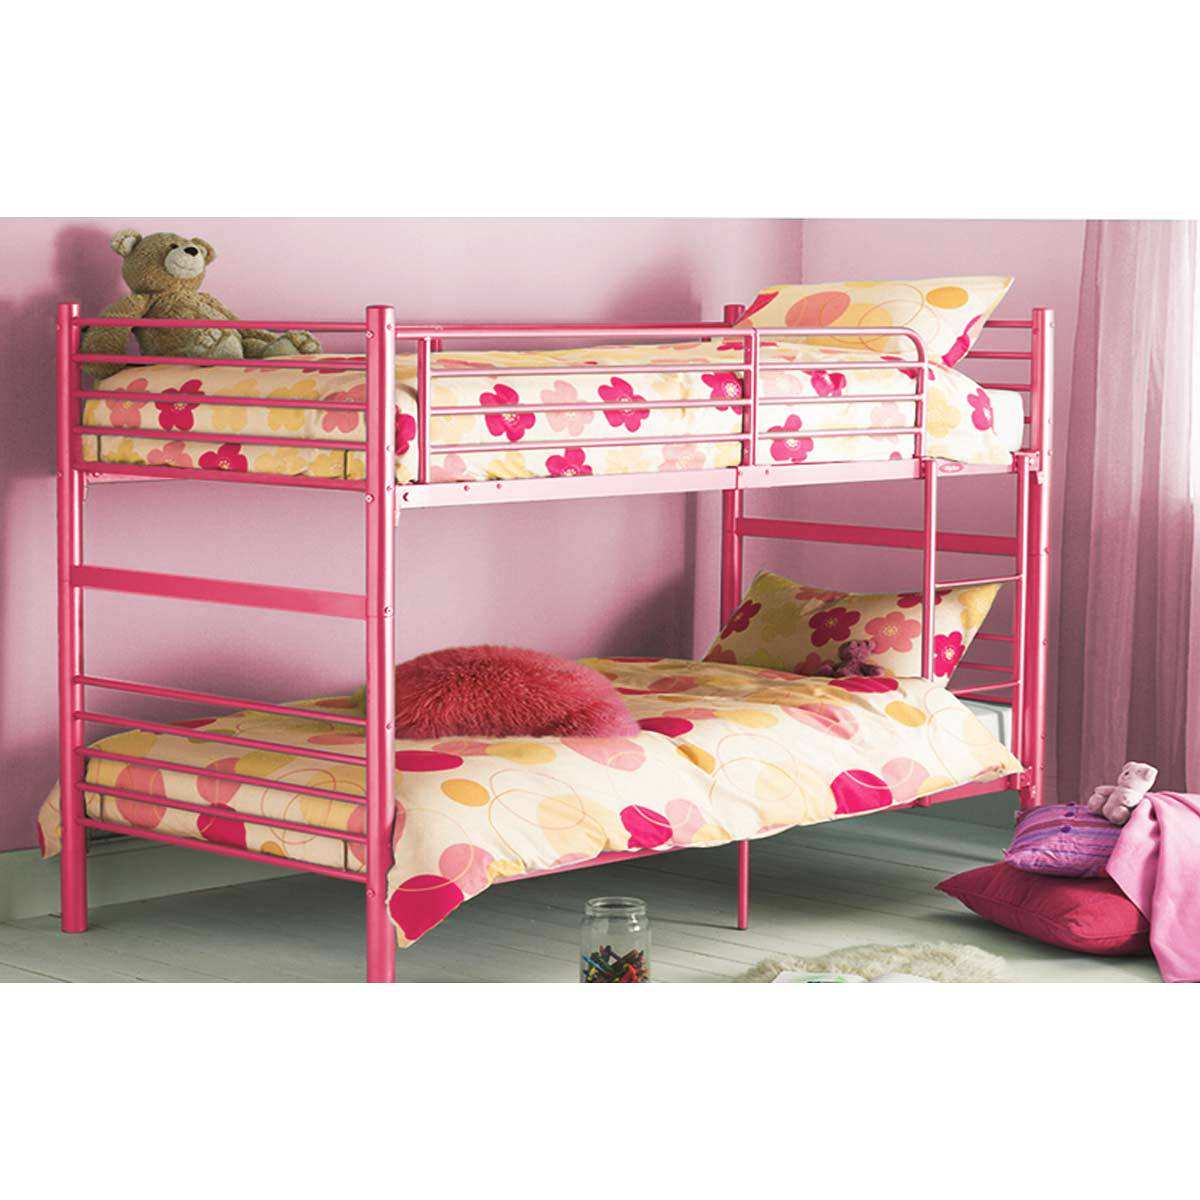 cutest bunk beds photo - 6